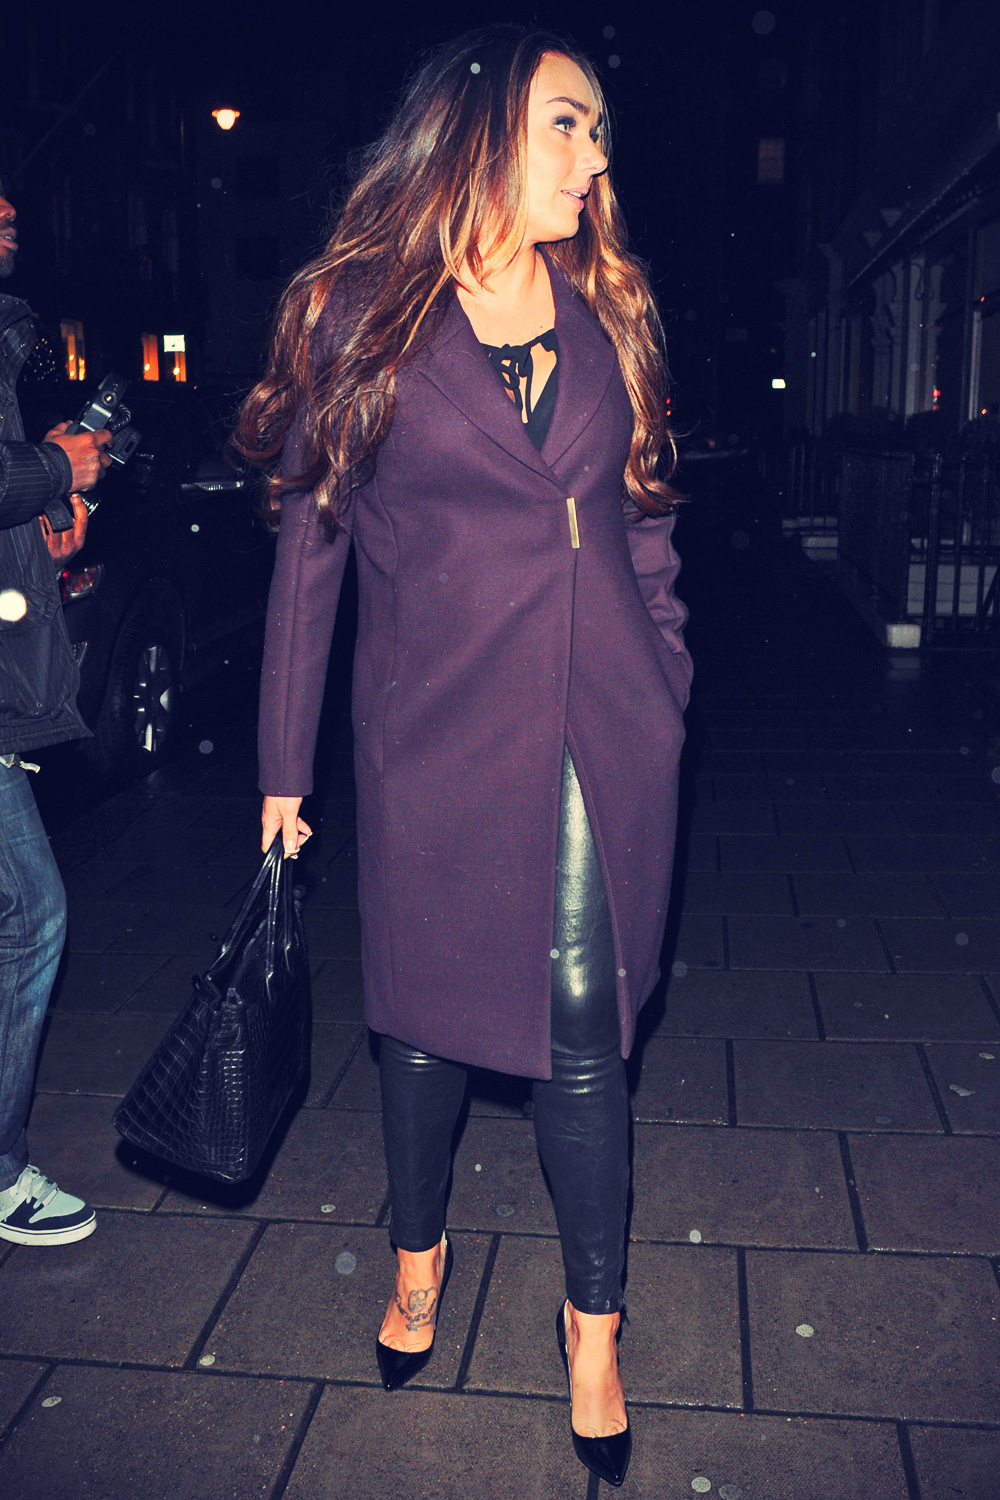 Tamara Ecclestone dine out in Mayfair